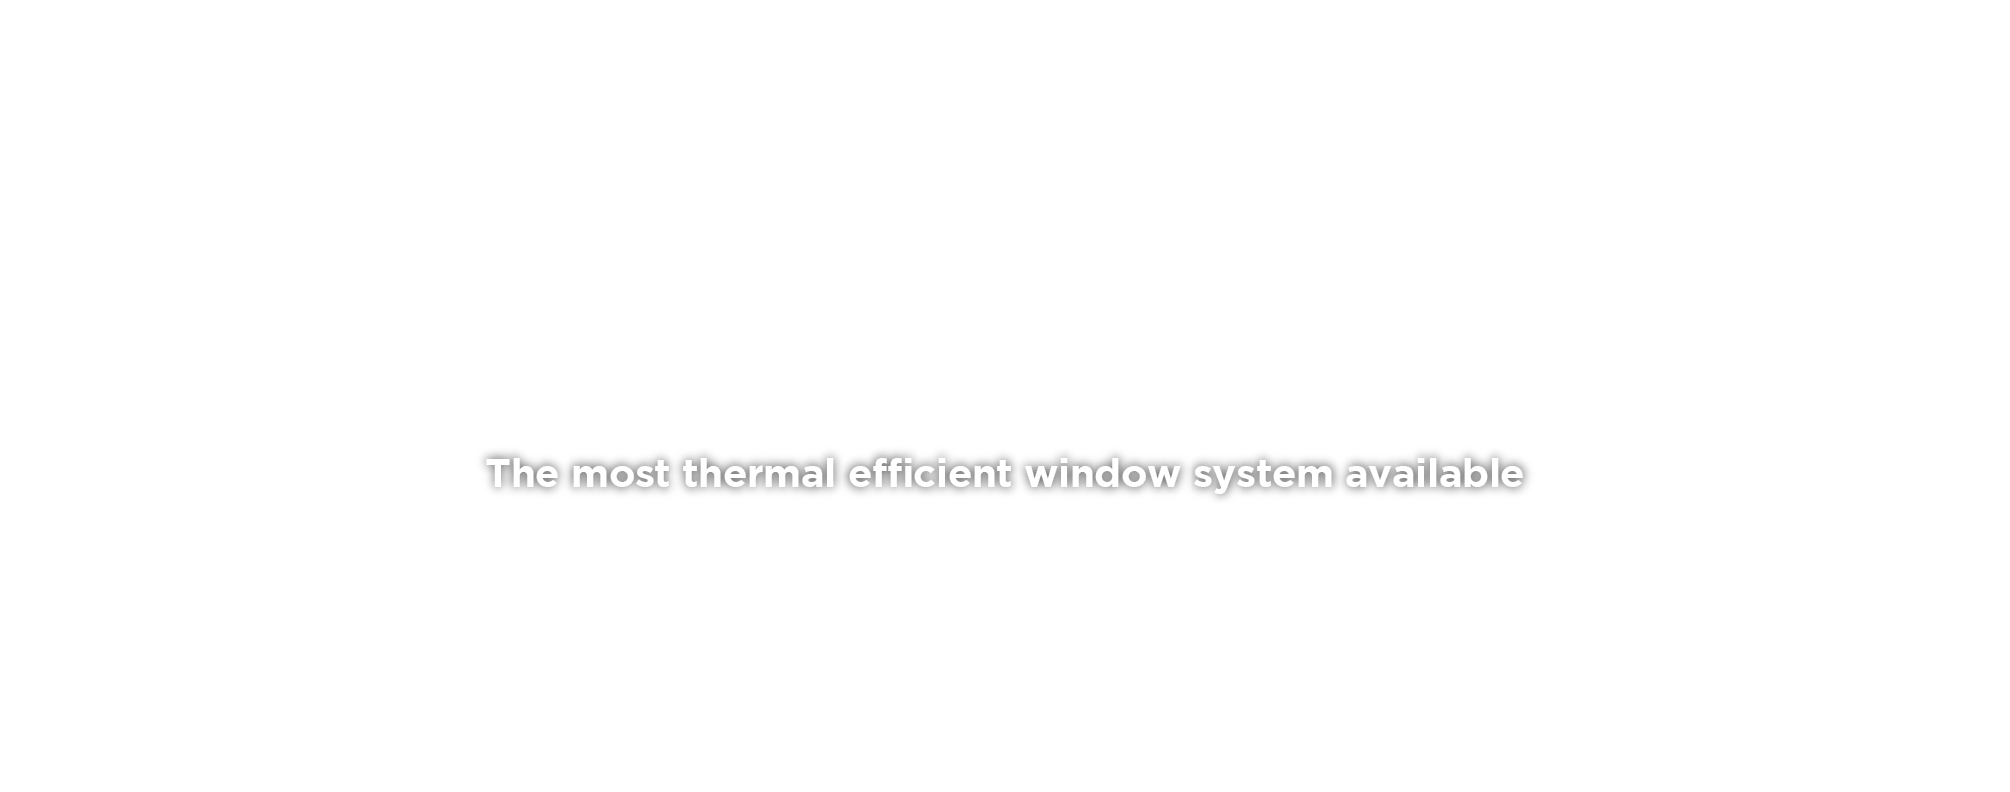 The most thermal efficient window system available